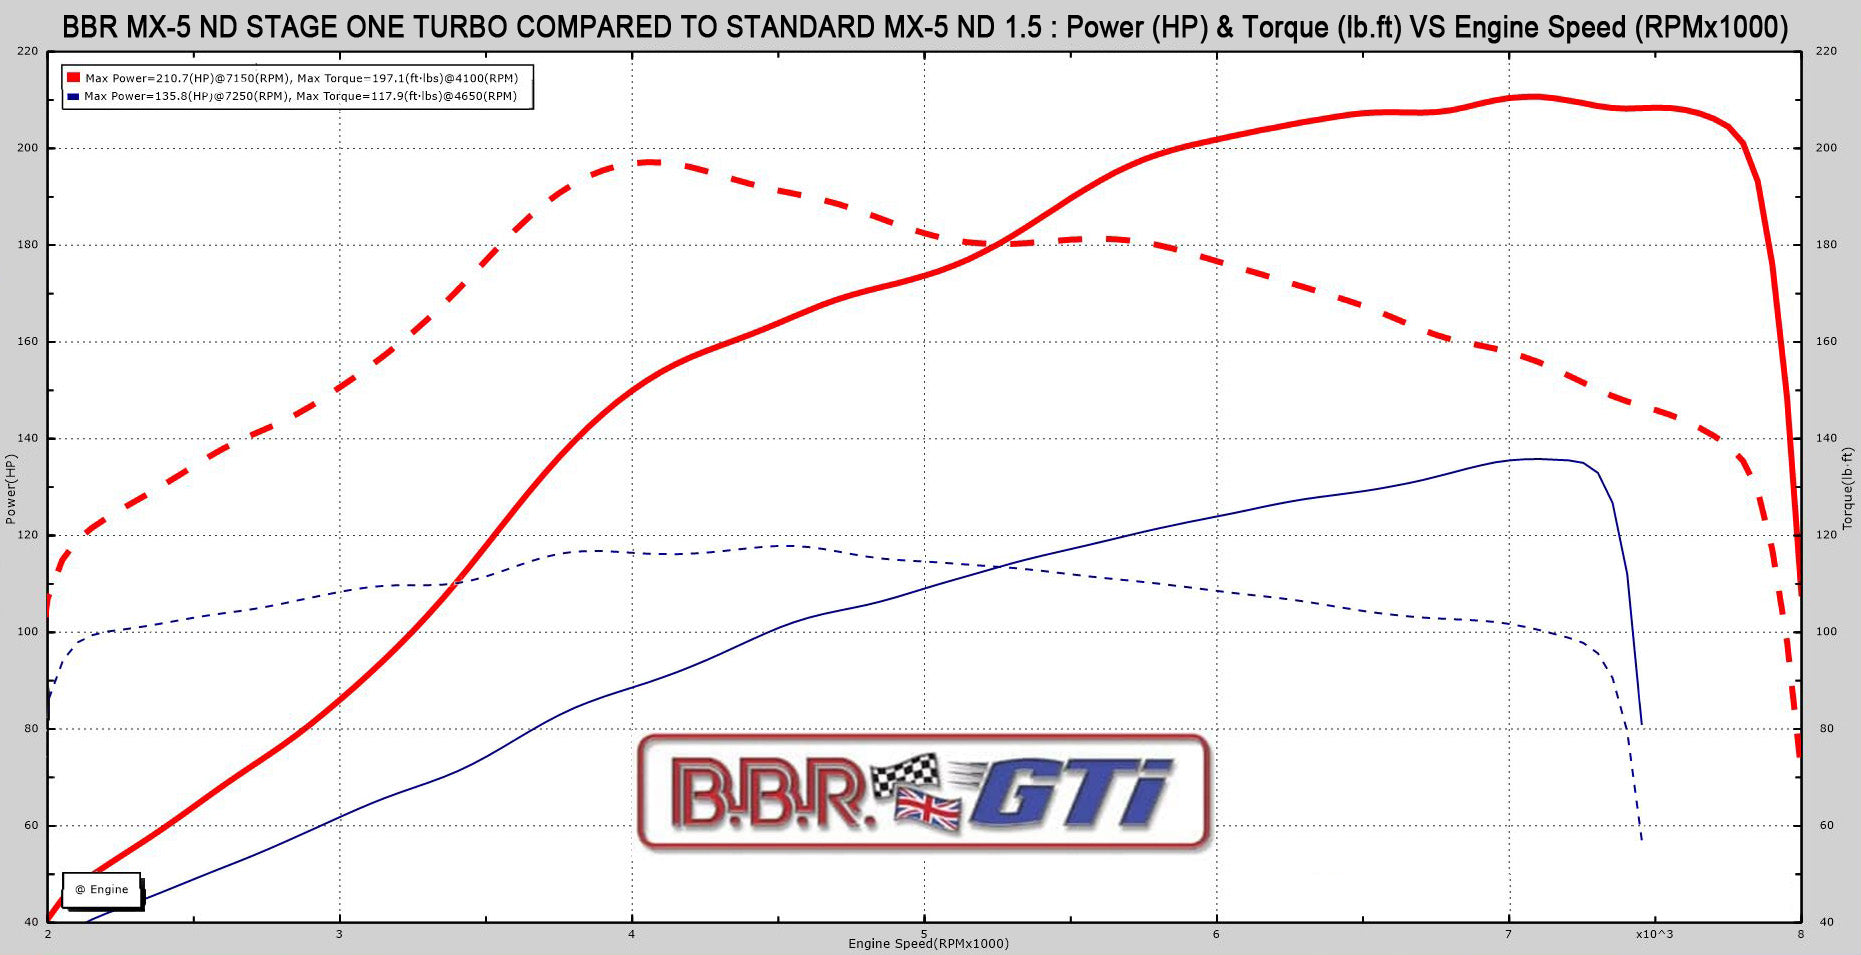 bbr_nd_turbo_1.5_dyno_graph